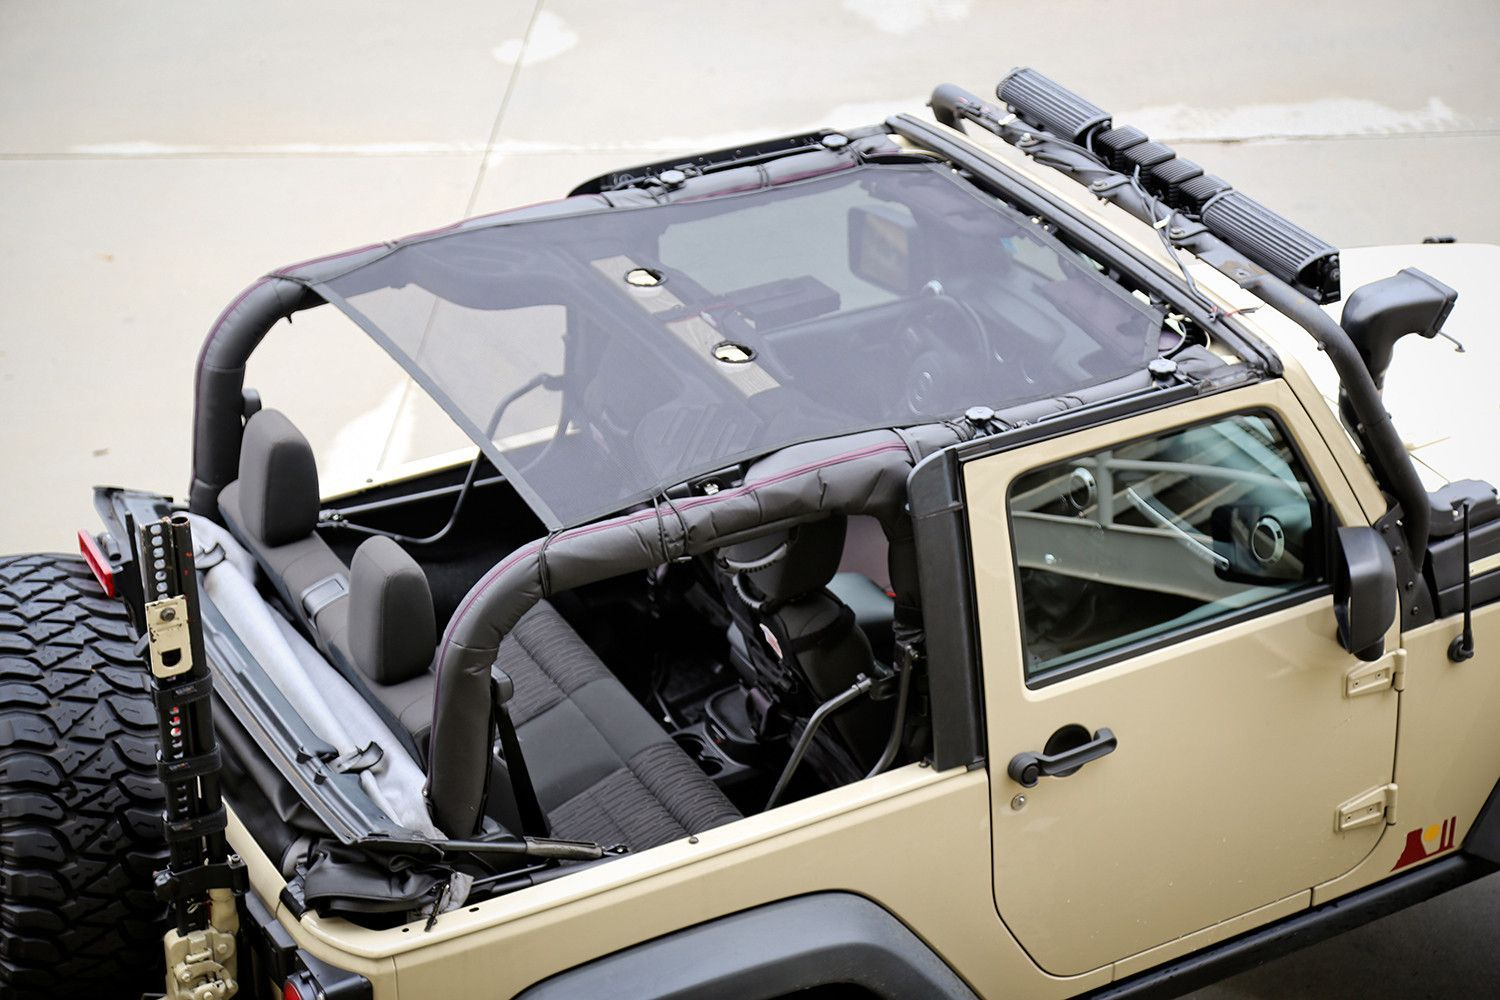 Looking For A Summer Top That Is Easy To Install And Remove The Rugged Ridge Eclipse Sunshade Gives Jeep Wrangler Jk Jeep Wrangler Accessories Four Door Jeep